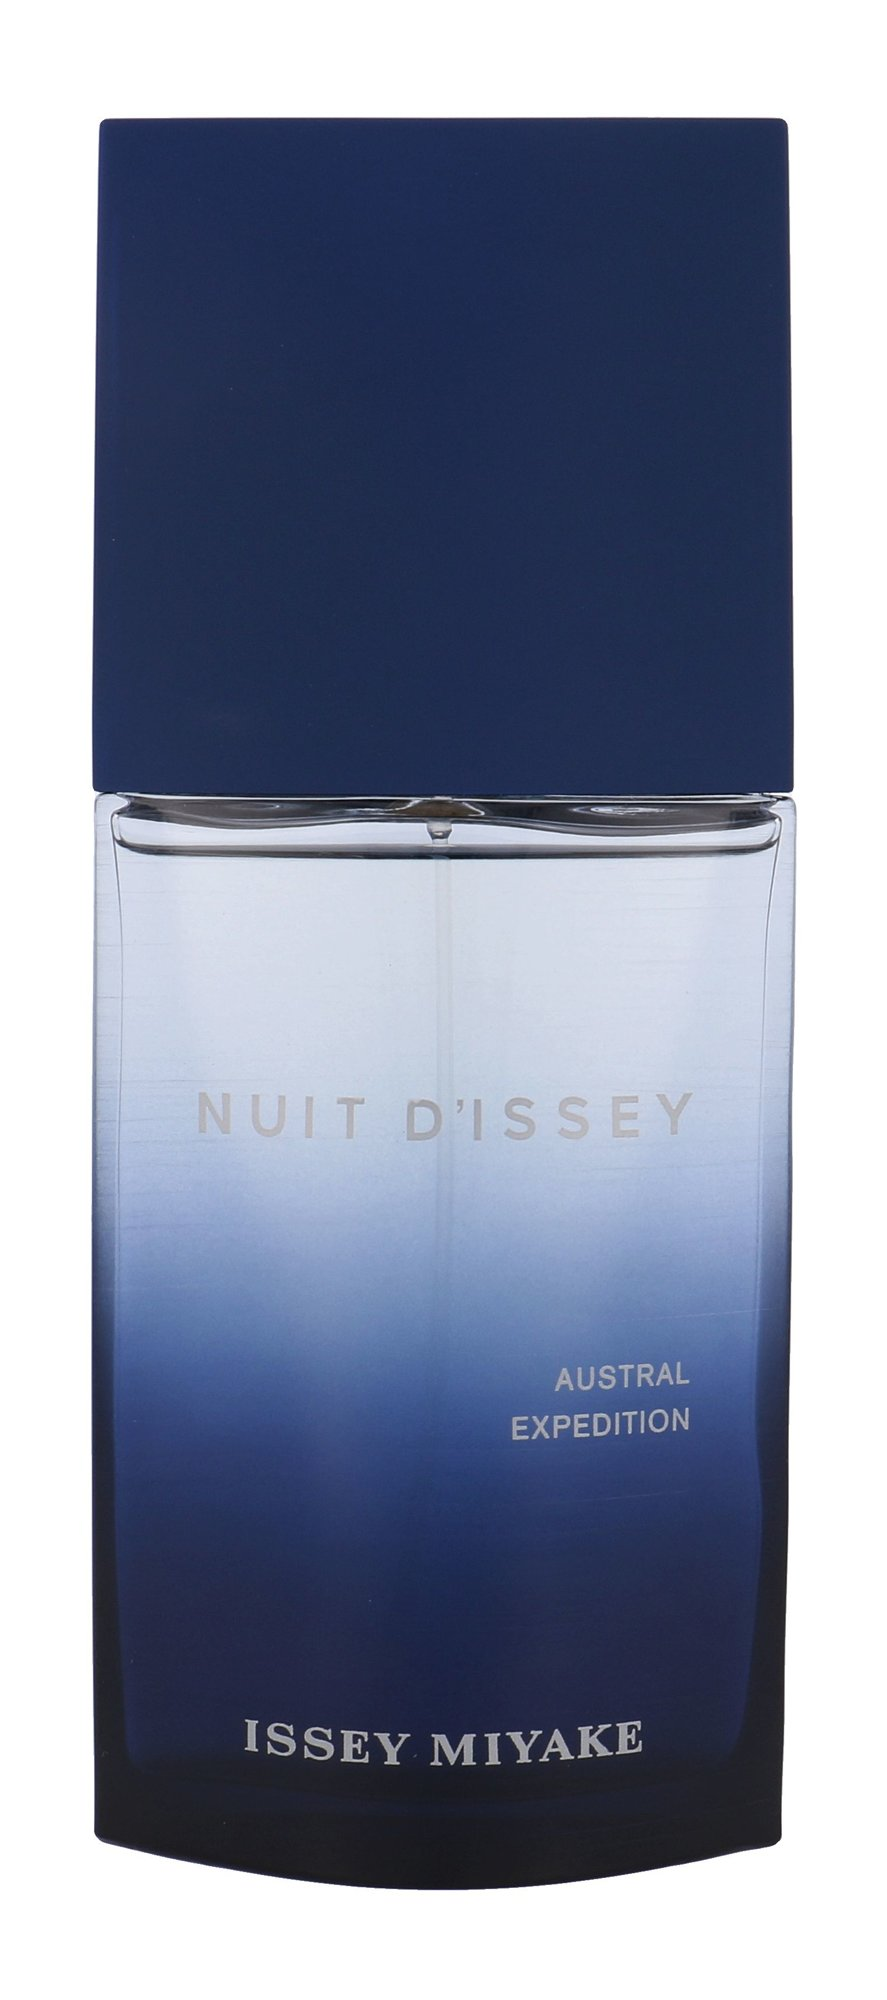 Issey Miyake Nuit D´Issey Austral Expedition EDT 125ml